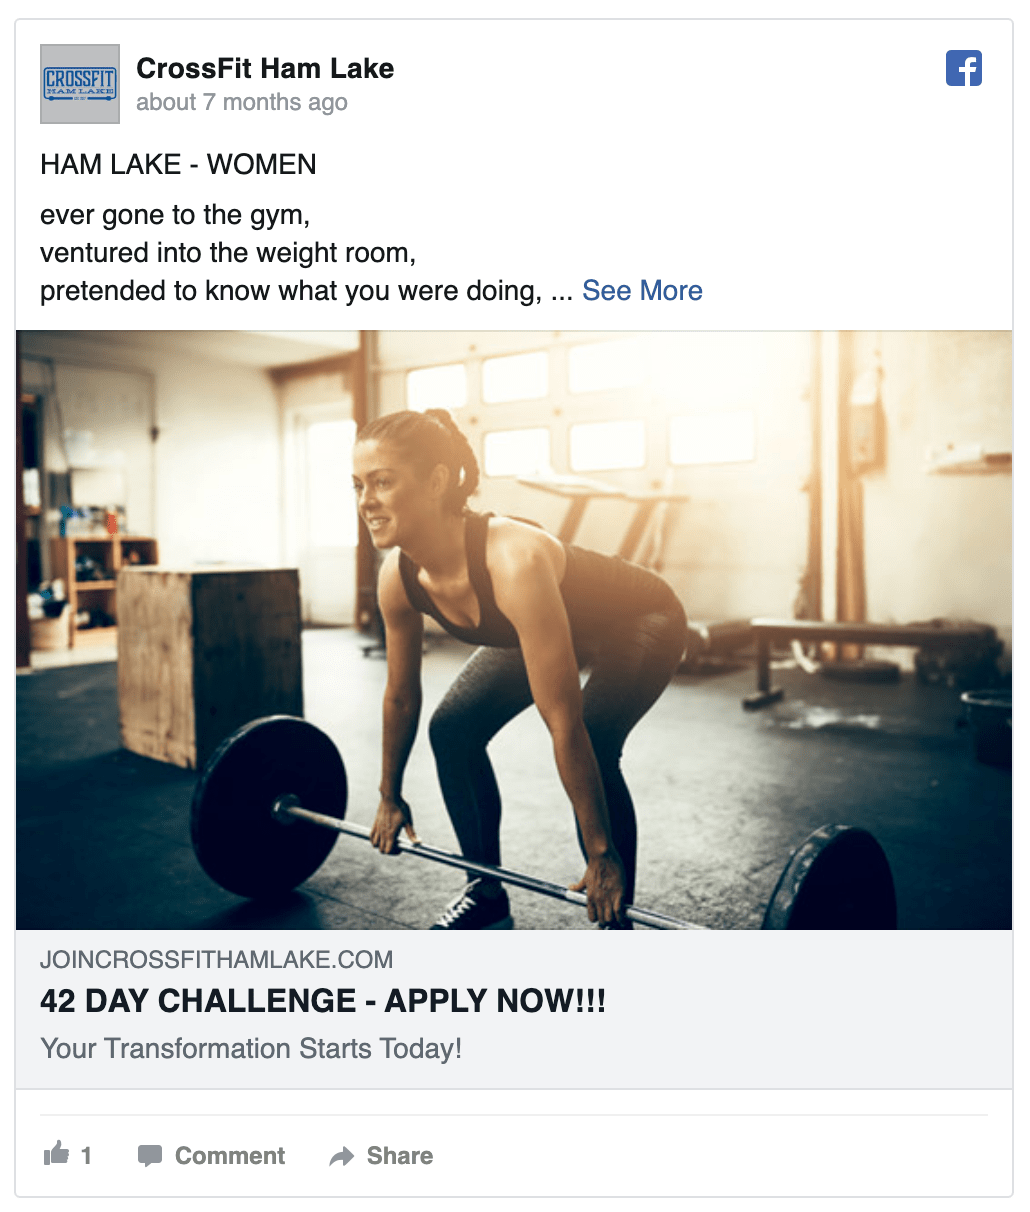 crossfit-ham-lake-facebook-ad